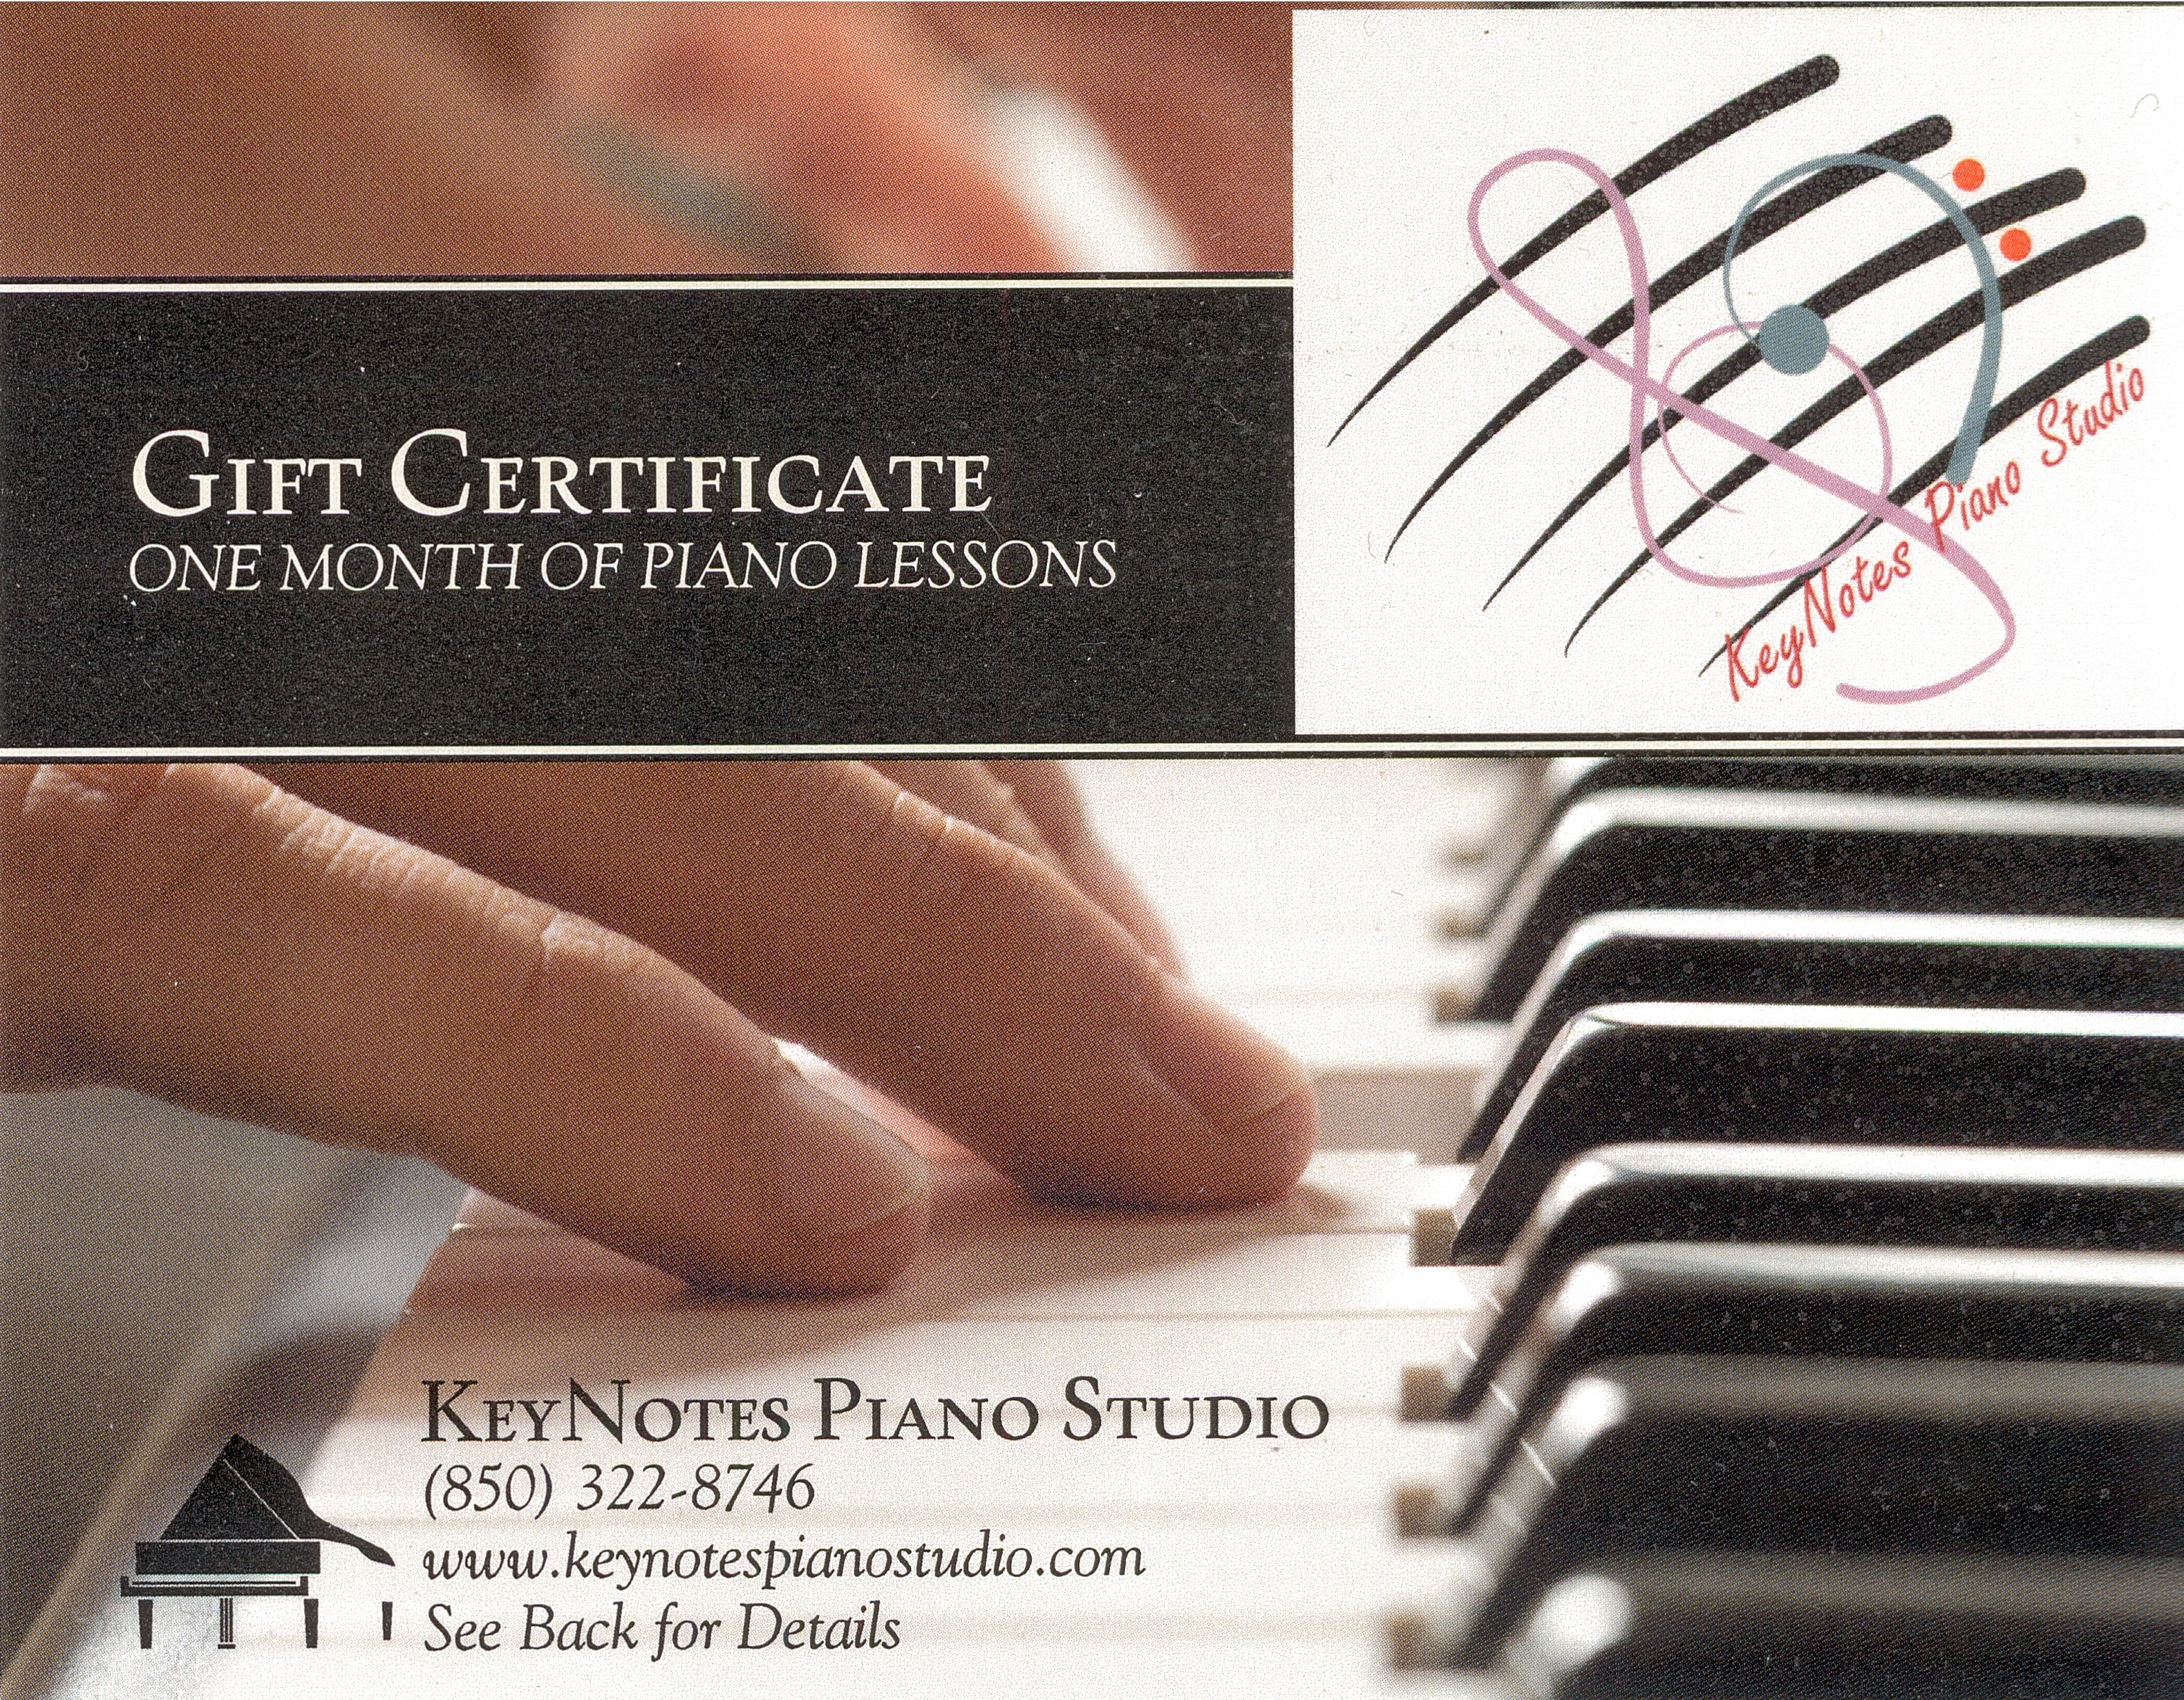 Specials and gift certificates keynotes piano studio beautifully designed gift certificates are available for birthdays holidays or any other special occasion once paid for the gift certificate can be yelopaper Choice Image